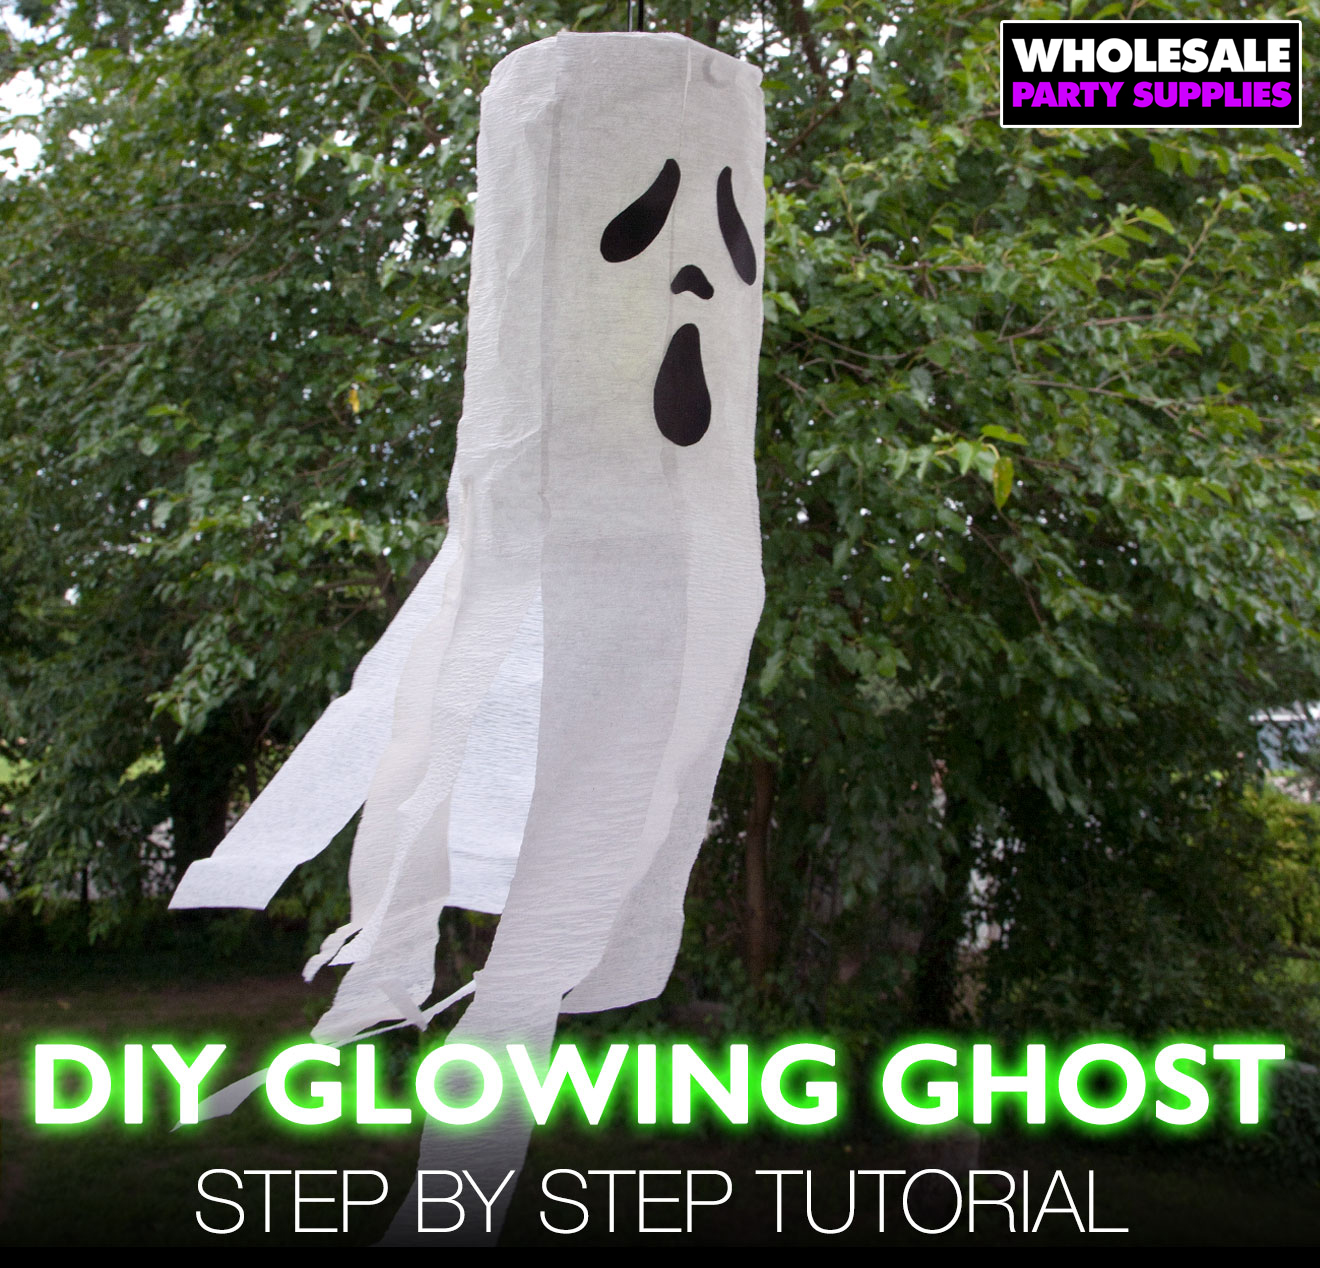 DIY Glowing Ghost